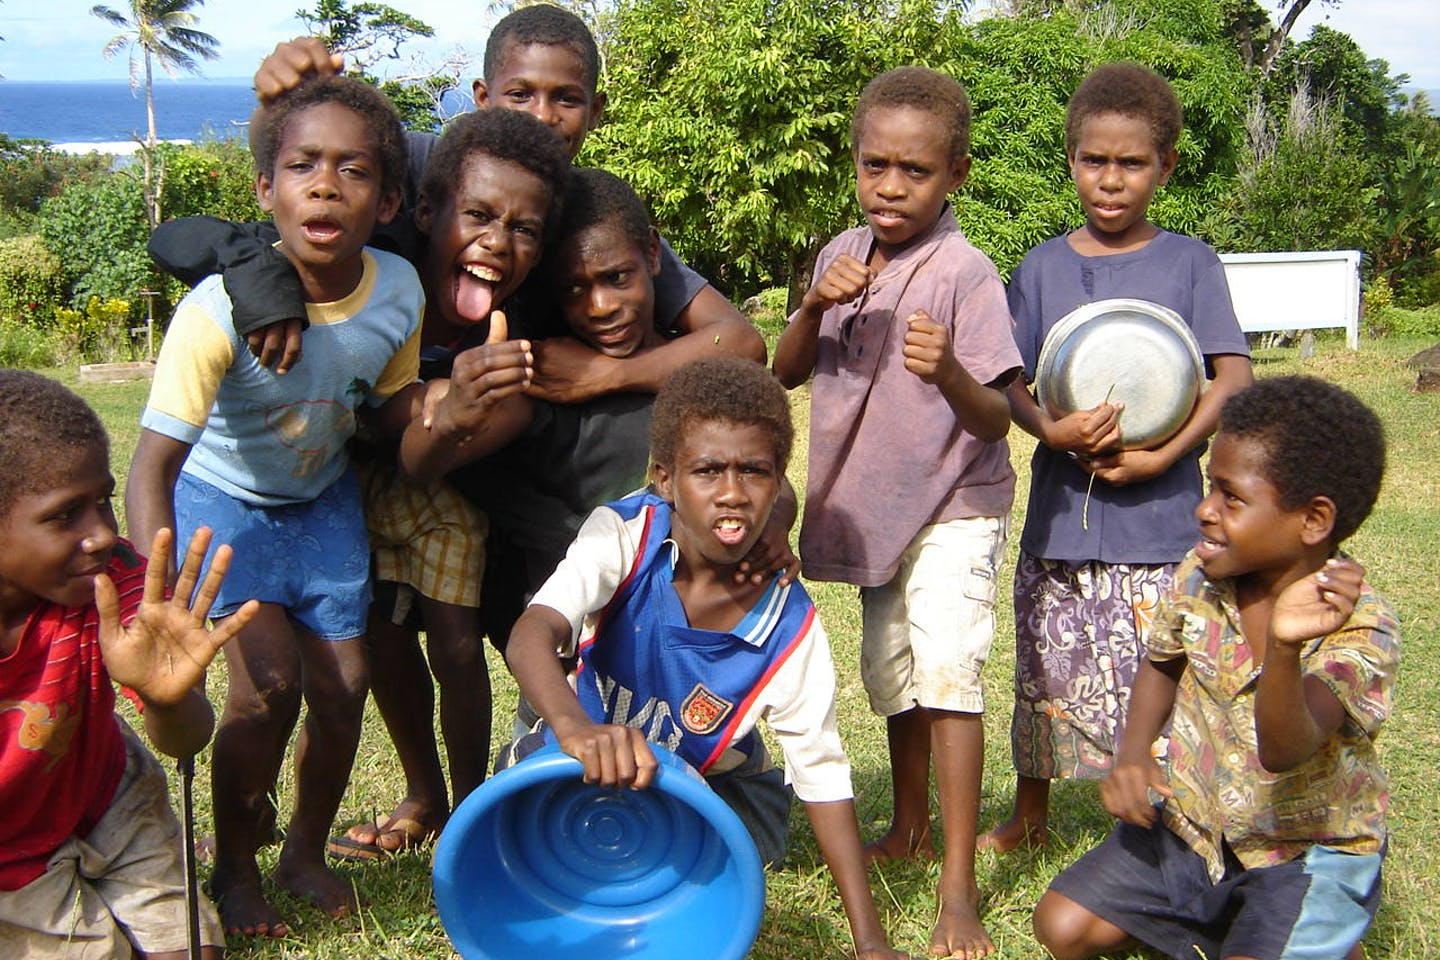 Will the children of Vanuatu have a future?